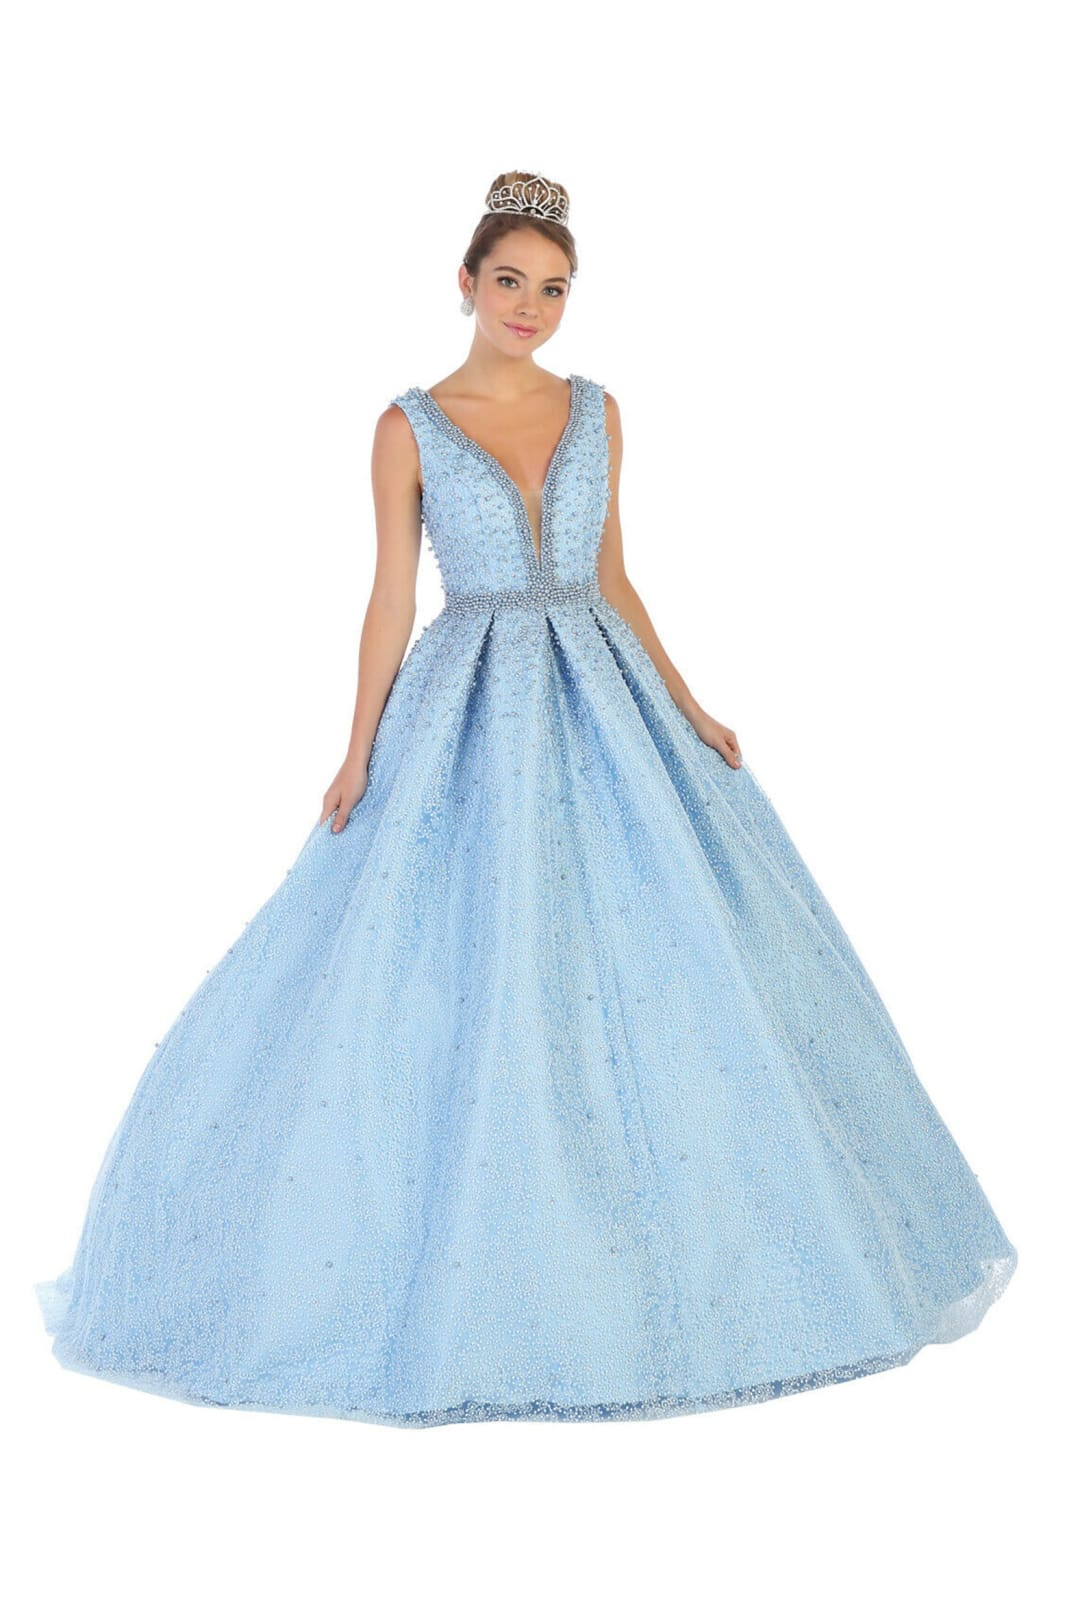 Sleeveless V-Neck Ball Gown - Baby Blue / 4